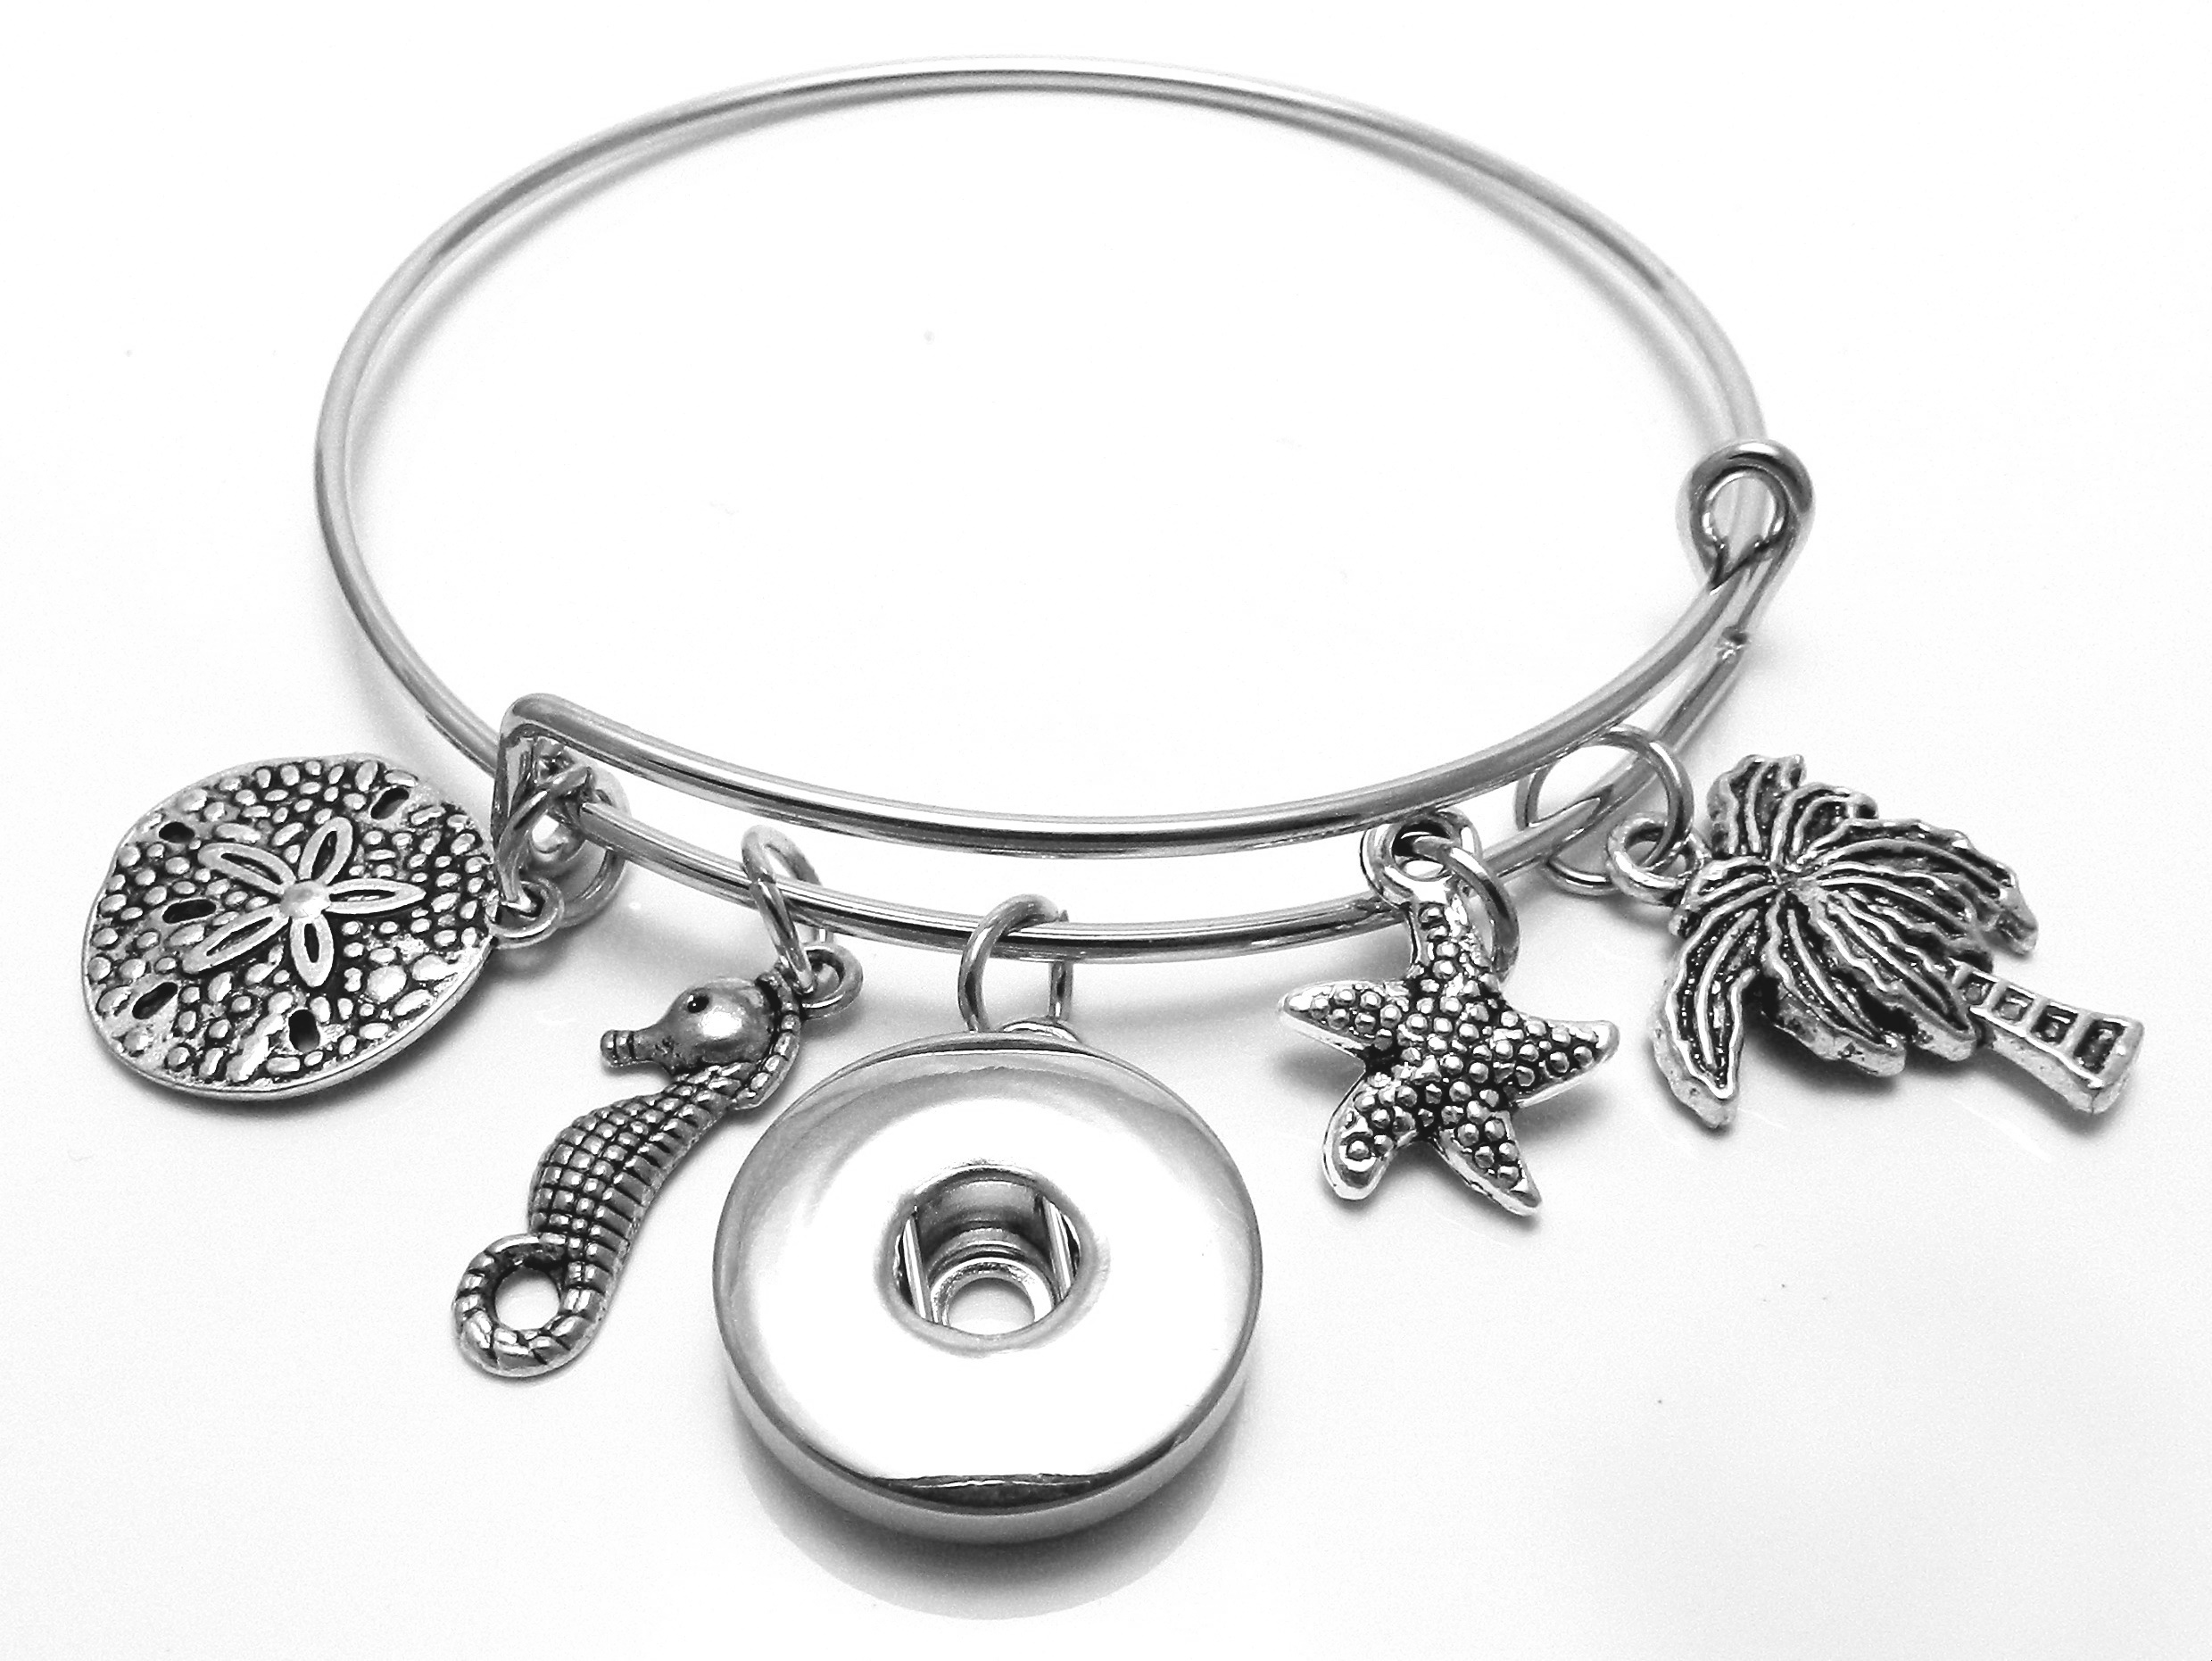 Snap Jewelry Wire Expandable Bangle - Sand Dollar, Palm Tree...